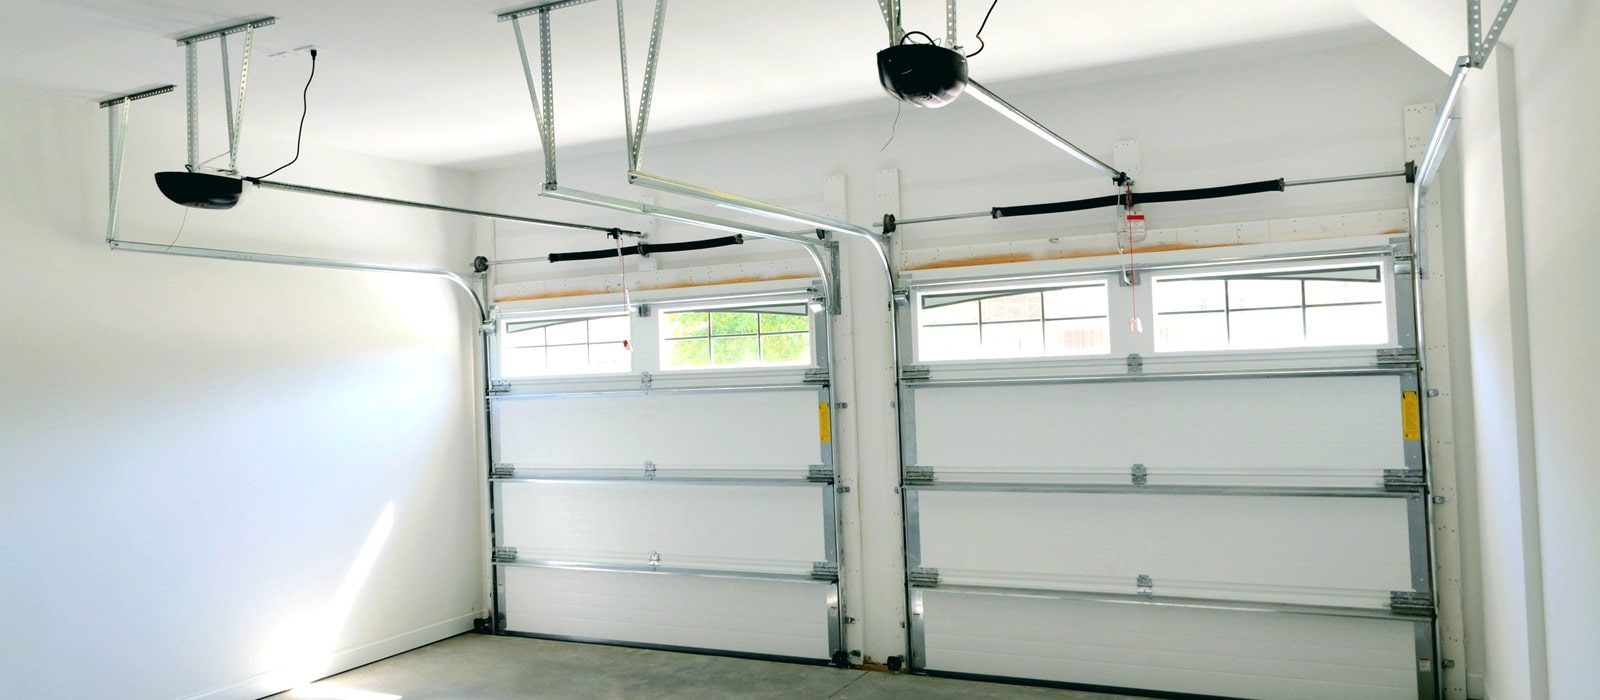 Automatic gates los angeles downtown central ca for Brentwood garage door